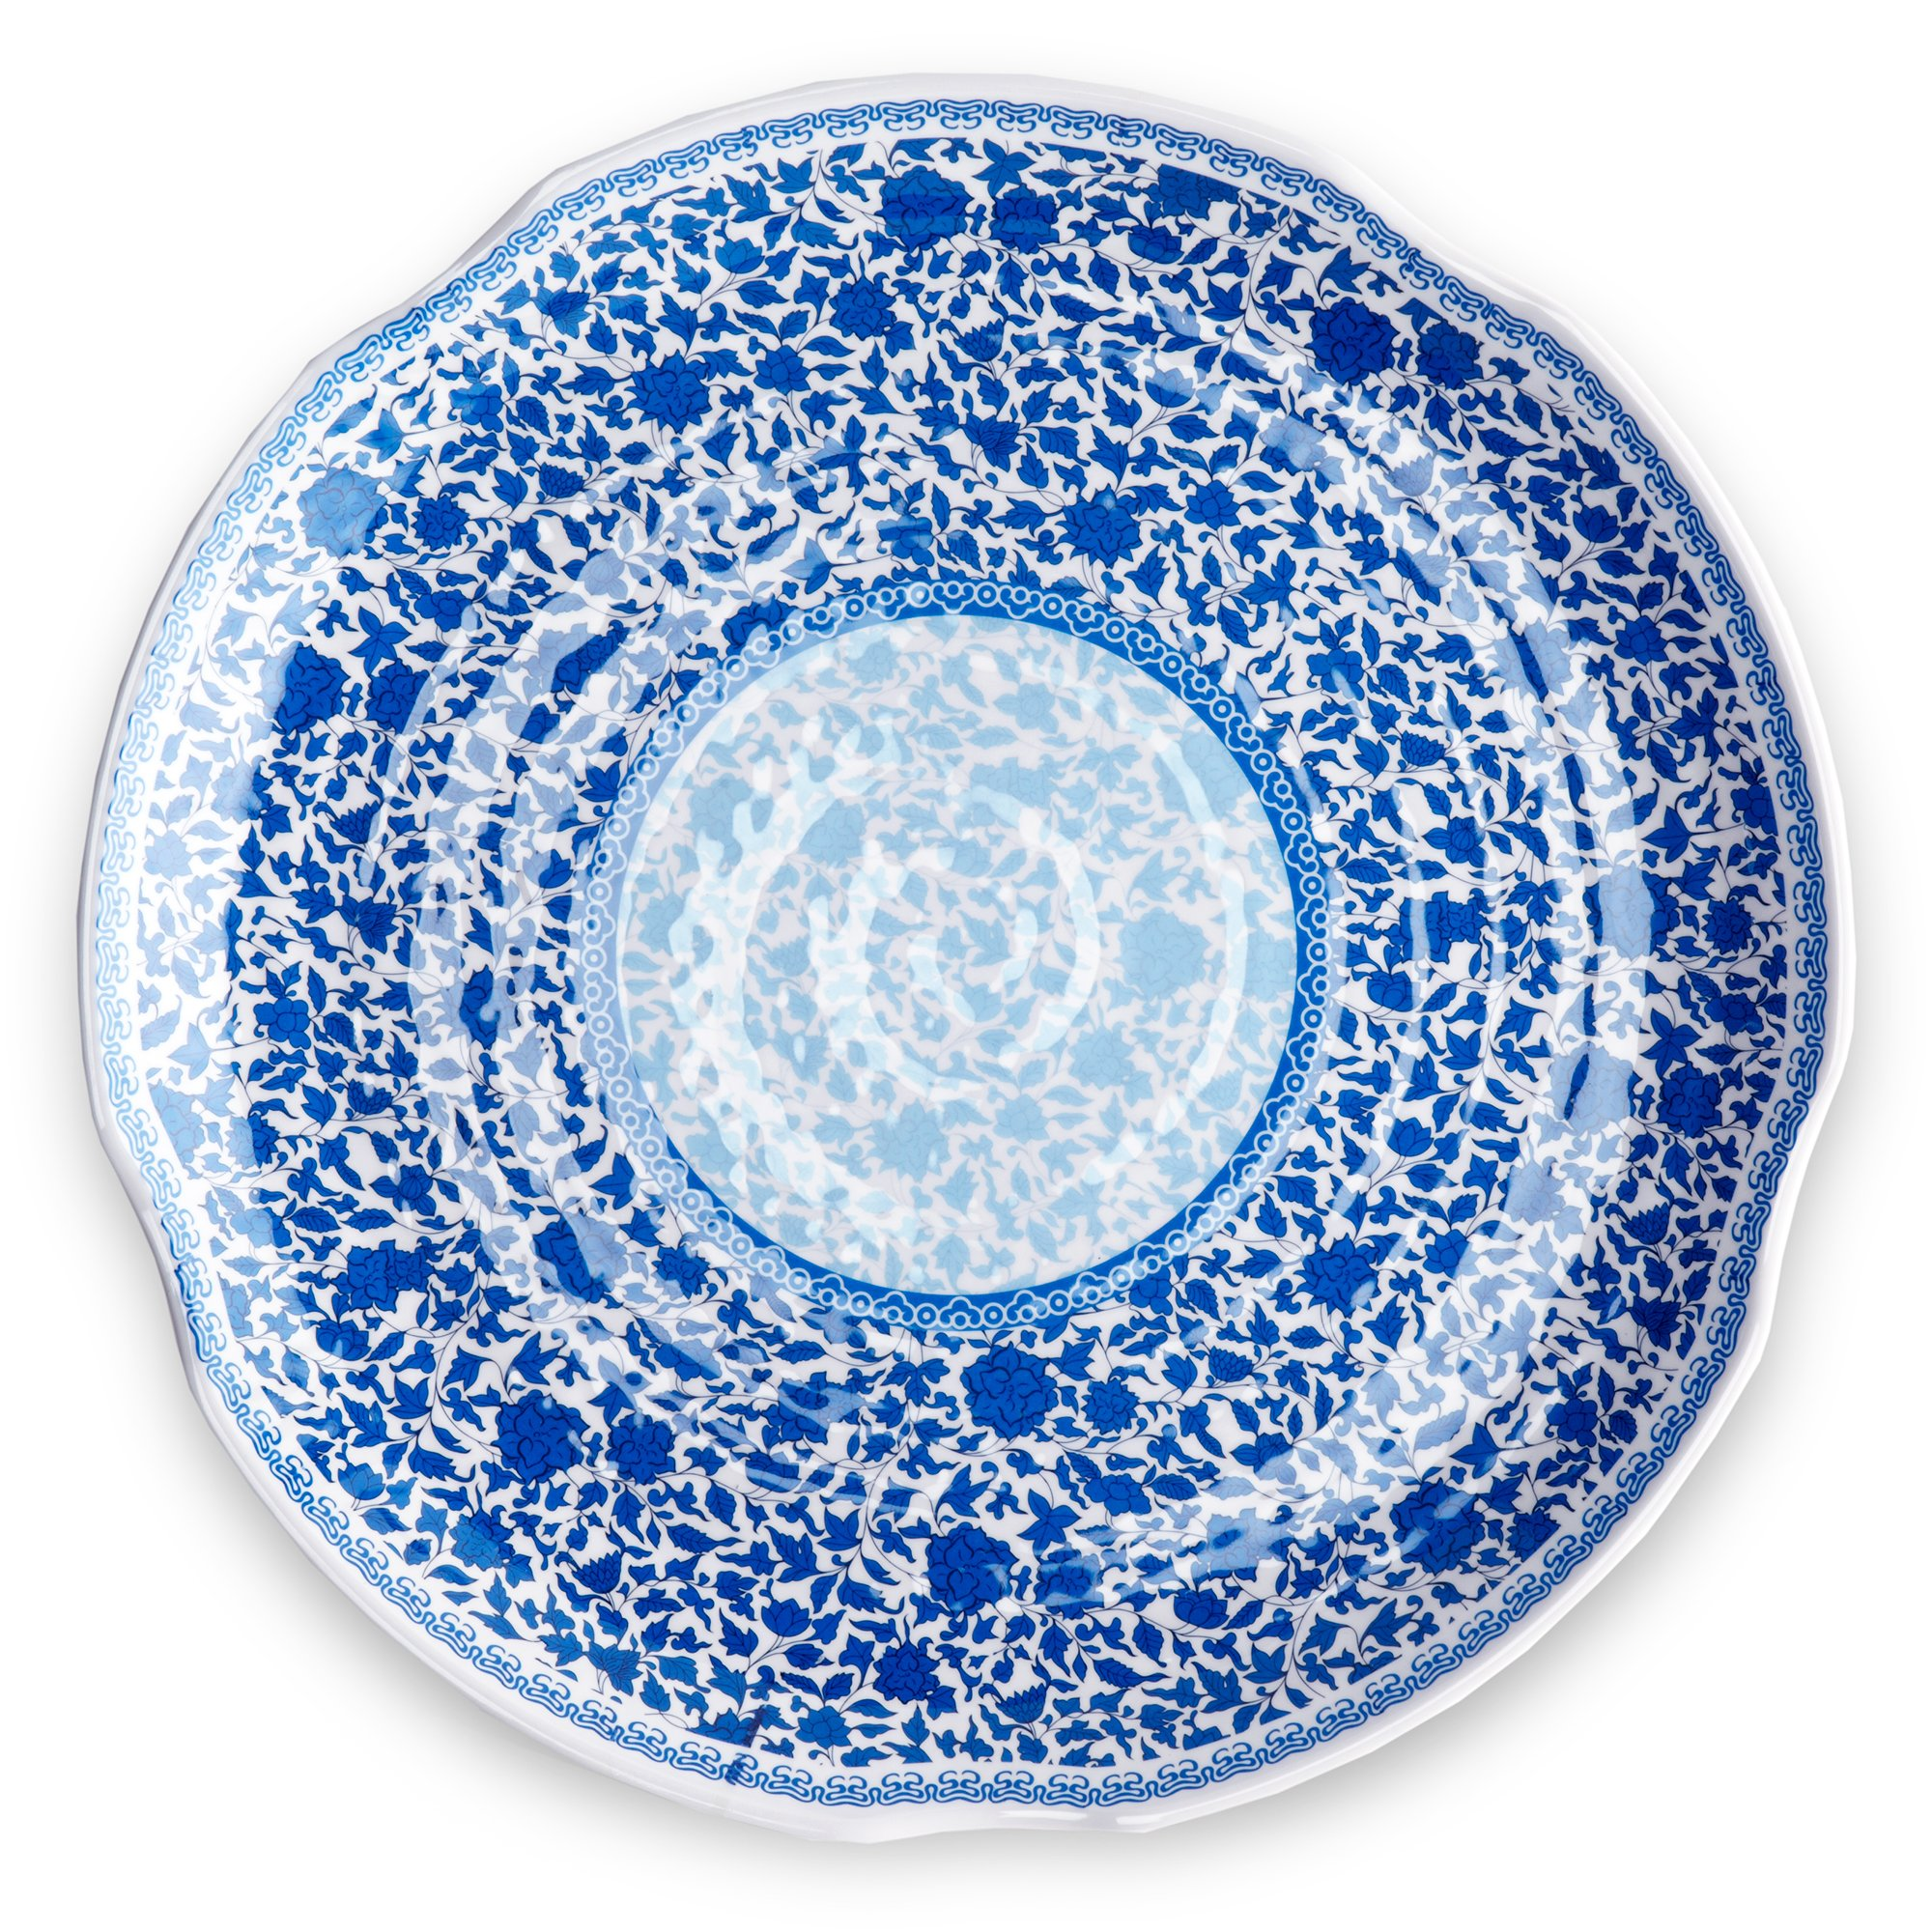 Q Squared Heritage BPA-Free Melamine Large Serving Platter, 16-Inches, Blue and White